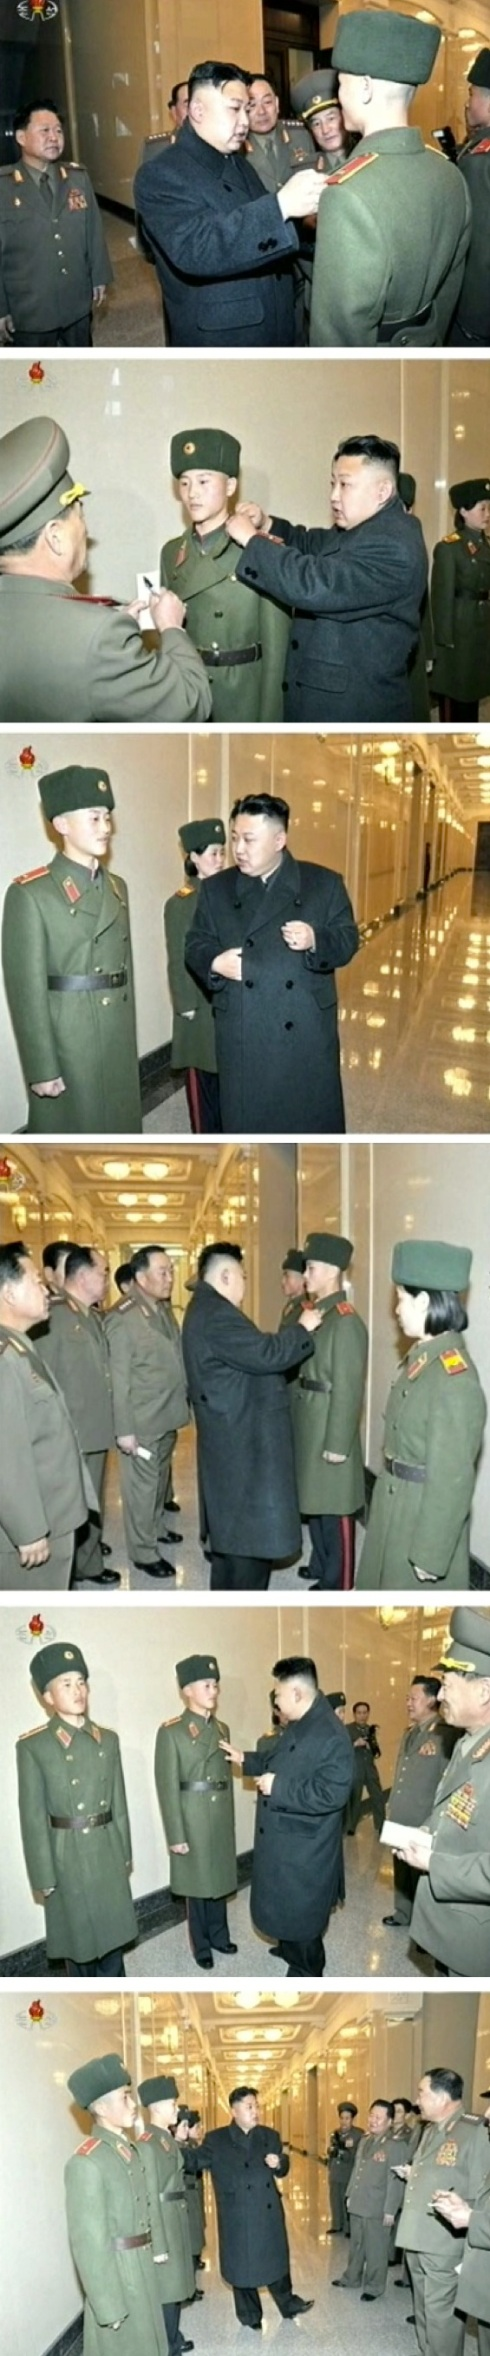 Kim Jong Un examines overcoats and other outerwear worn as part of the uniform by the students of Mangyo'ngdae and Kang Pan Sok Revolutionary Schools (Photos: KCTV screengrabs)